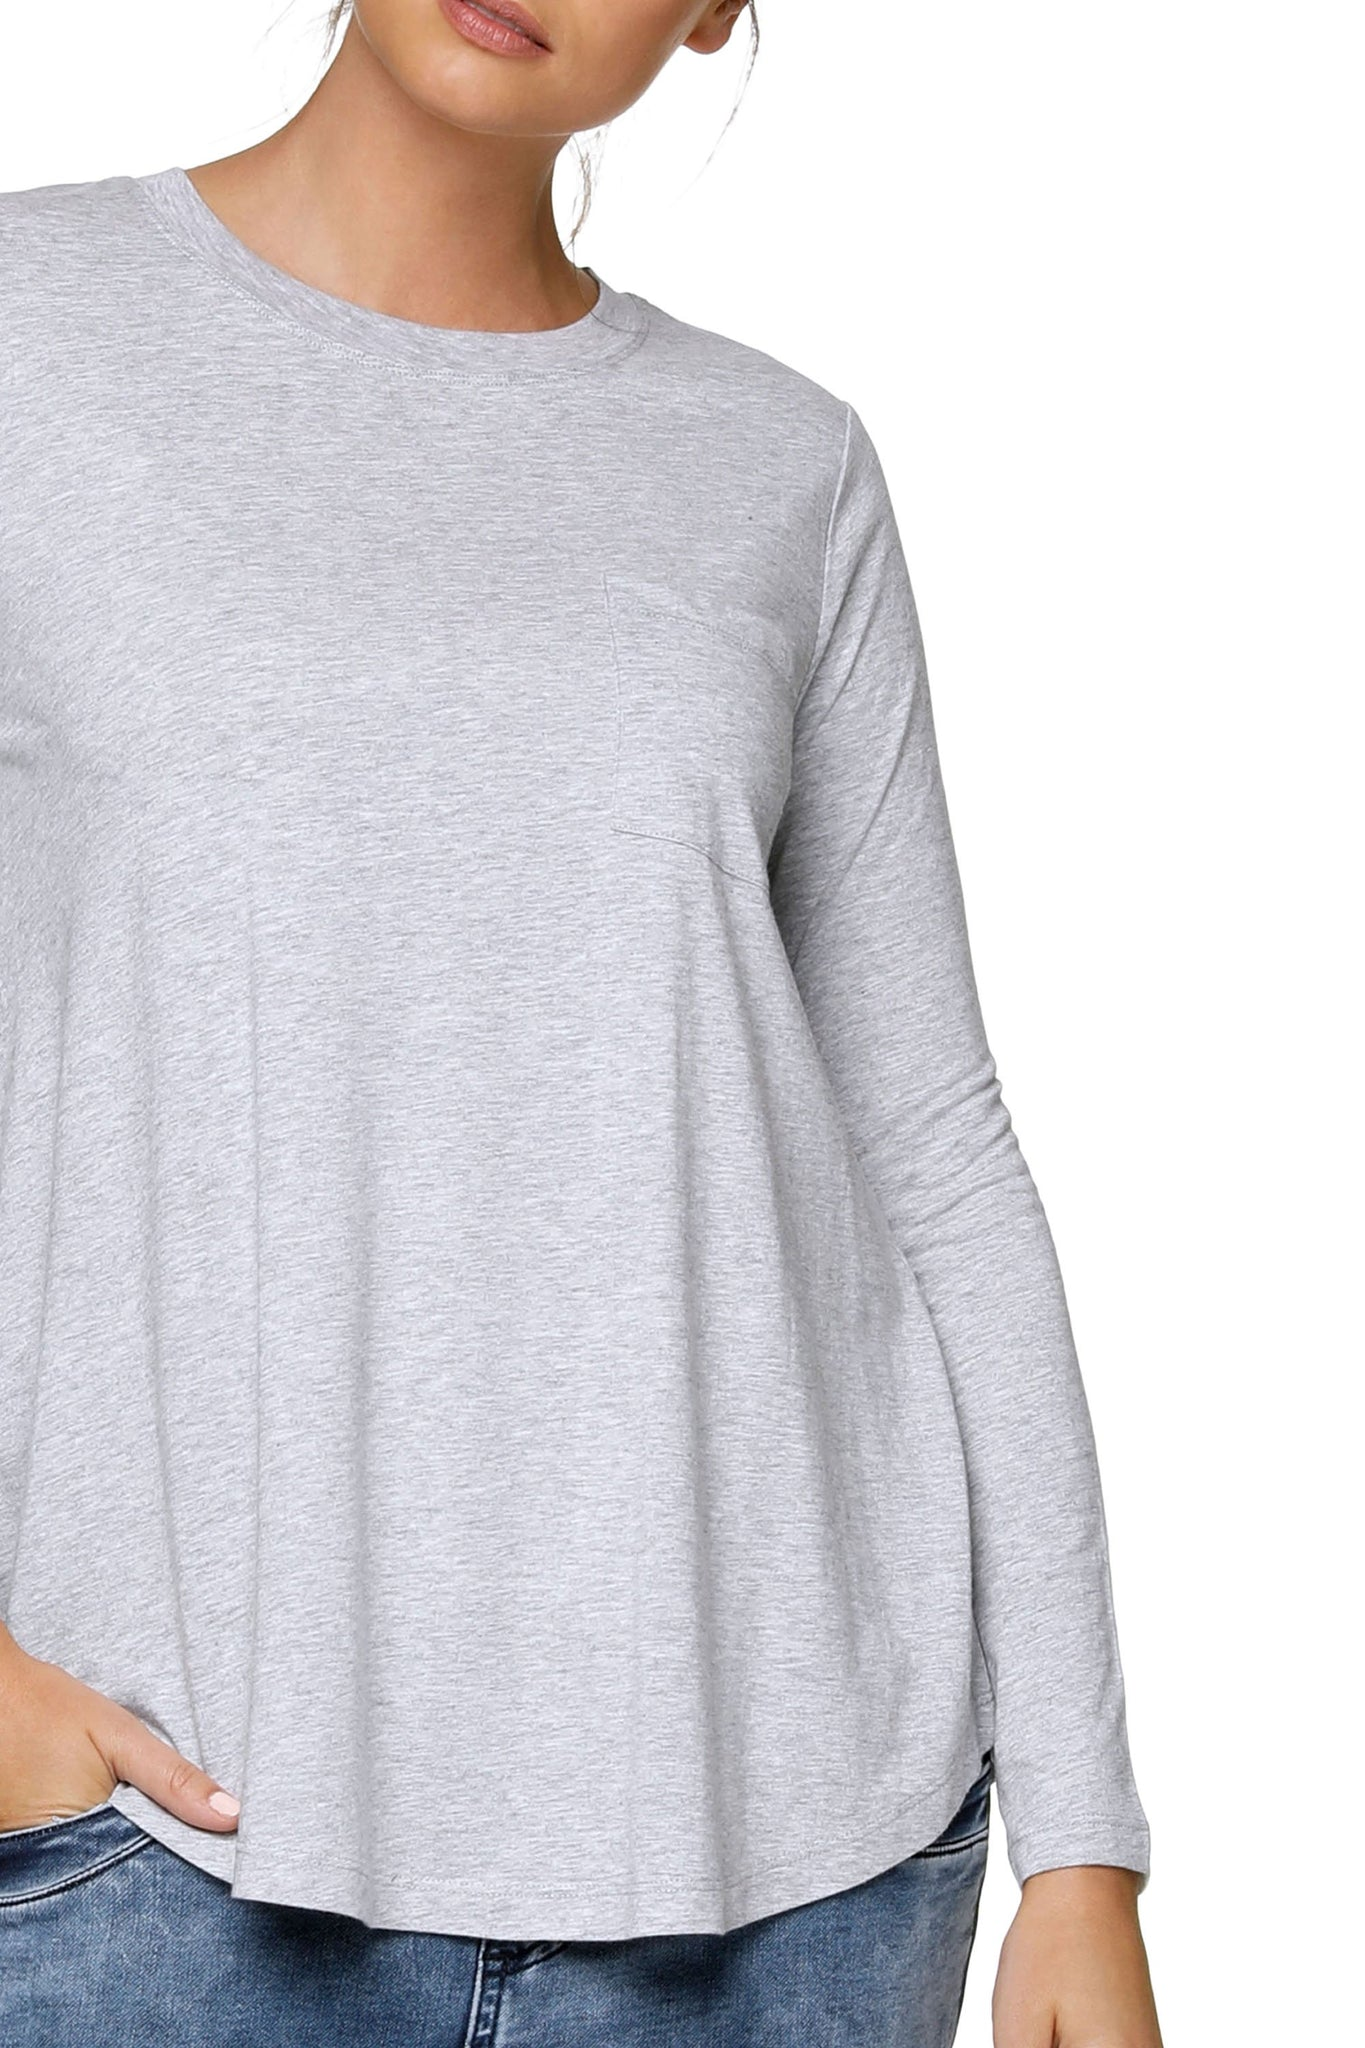 Long Sleeve Maternity Top - Grey 9